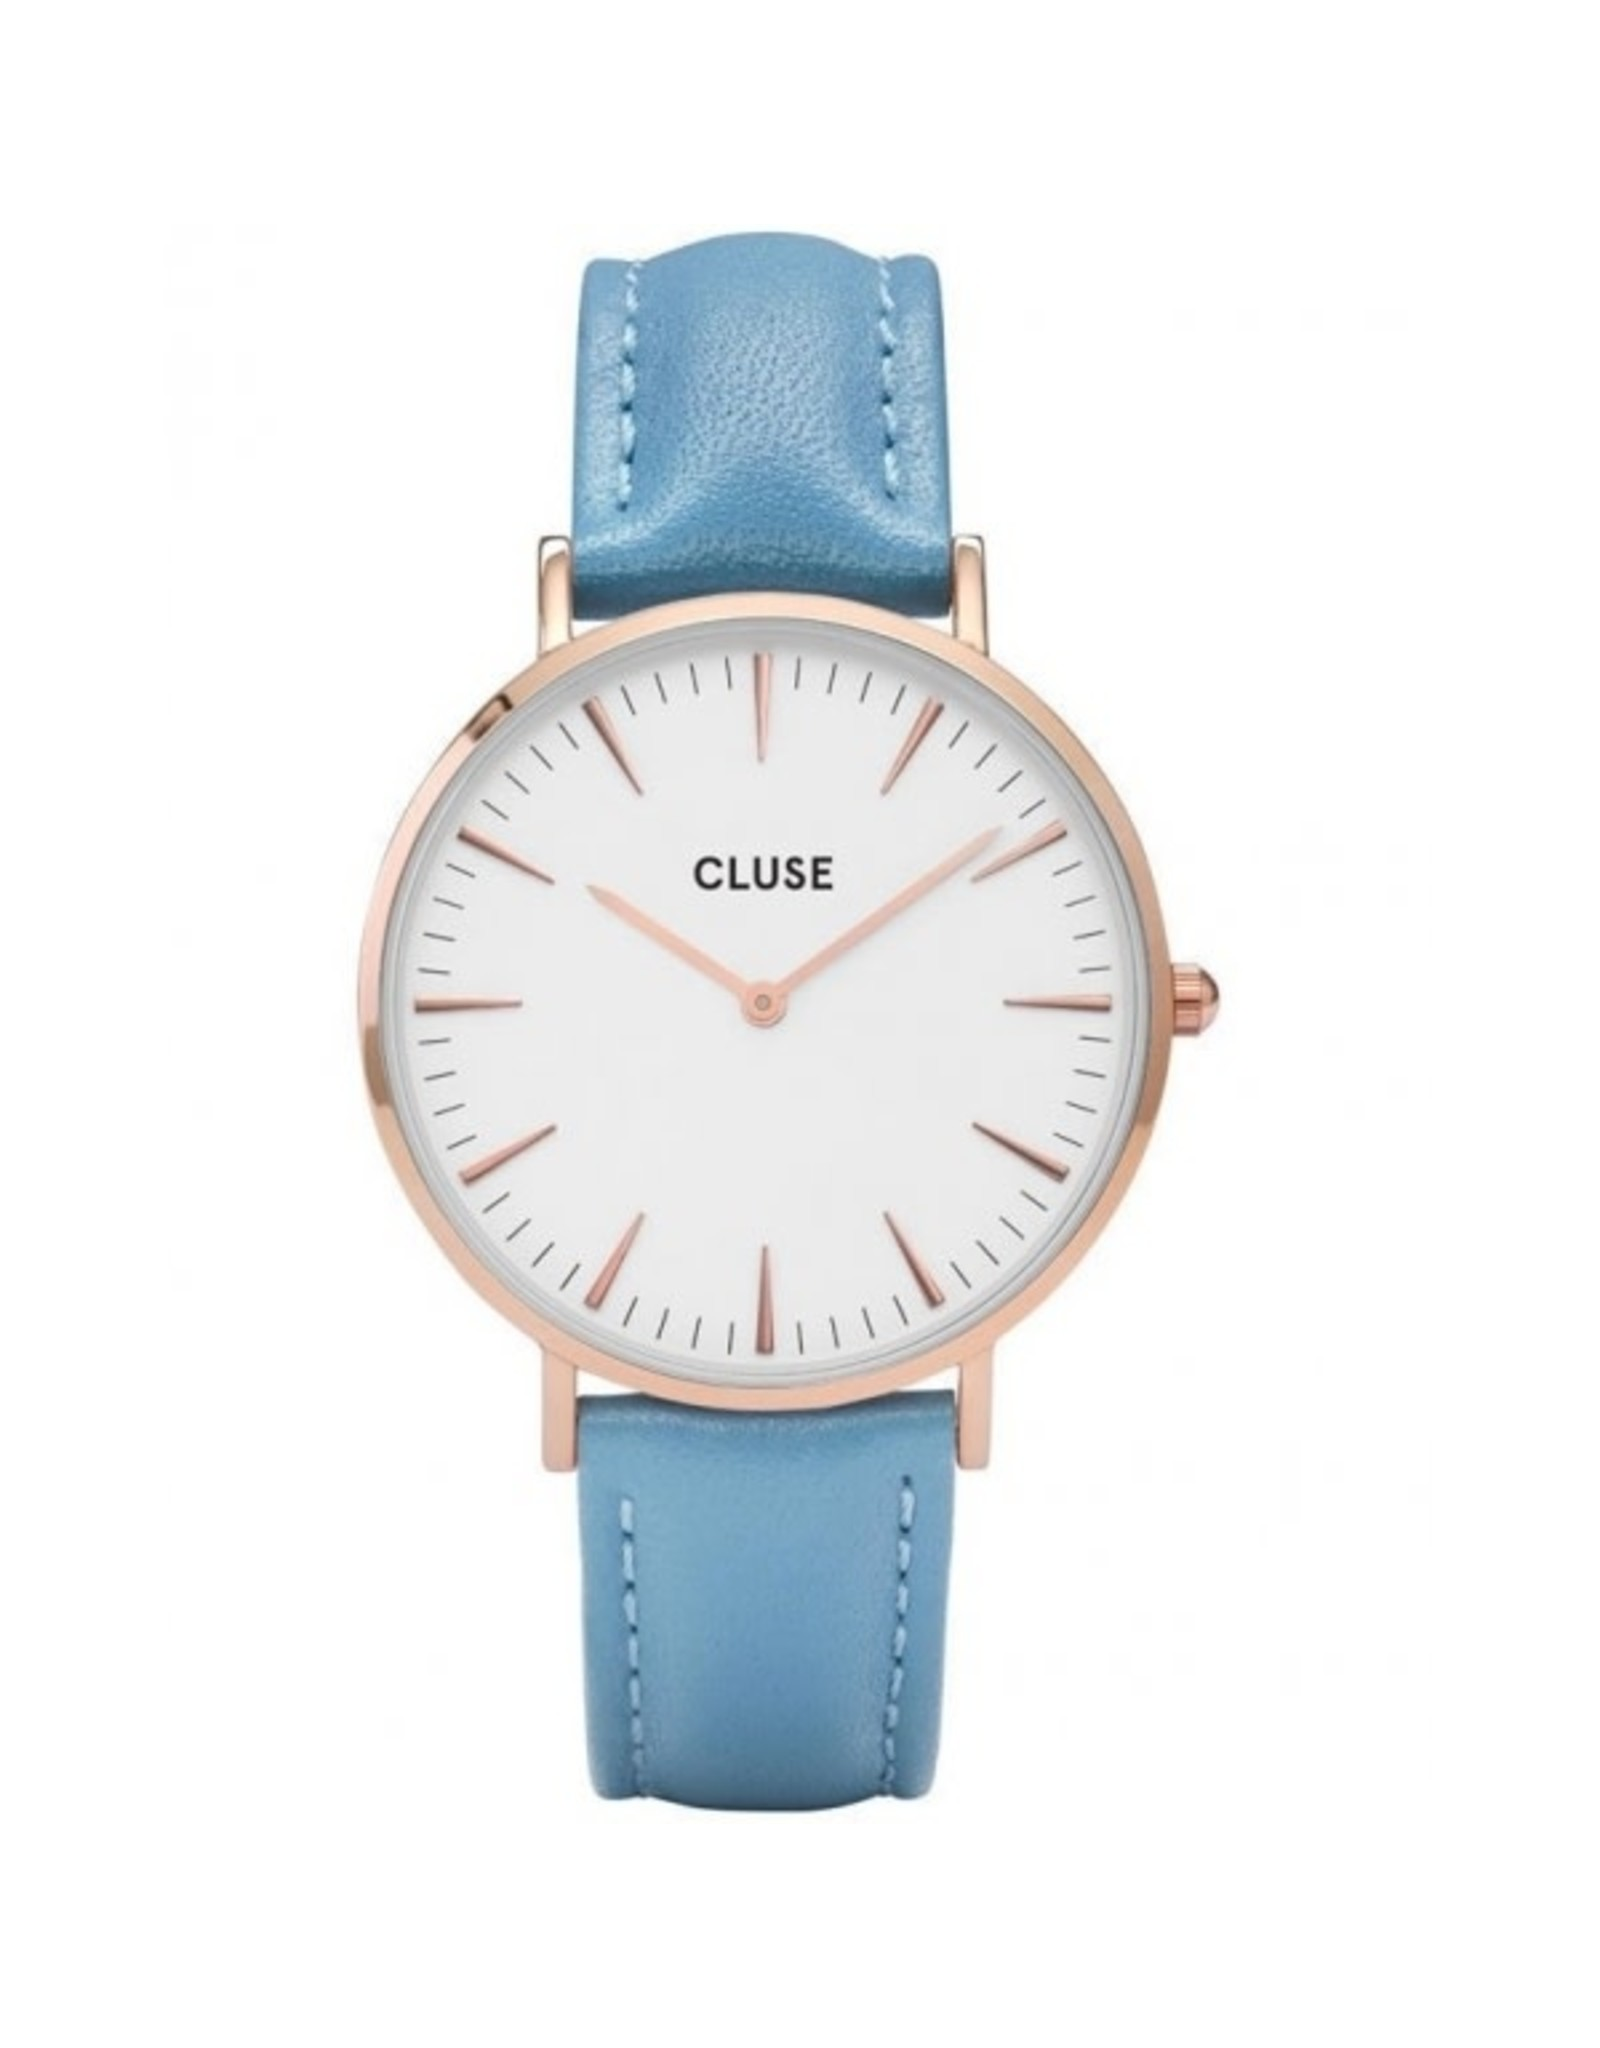 Cluse Cluse CL18033 Boho Chic Staal Roos - Blauw Leder 38mm